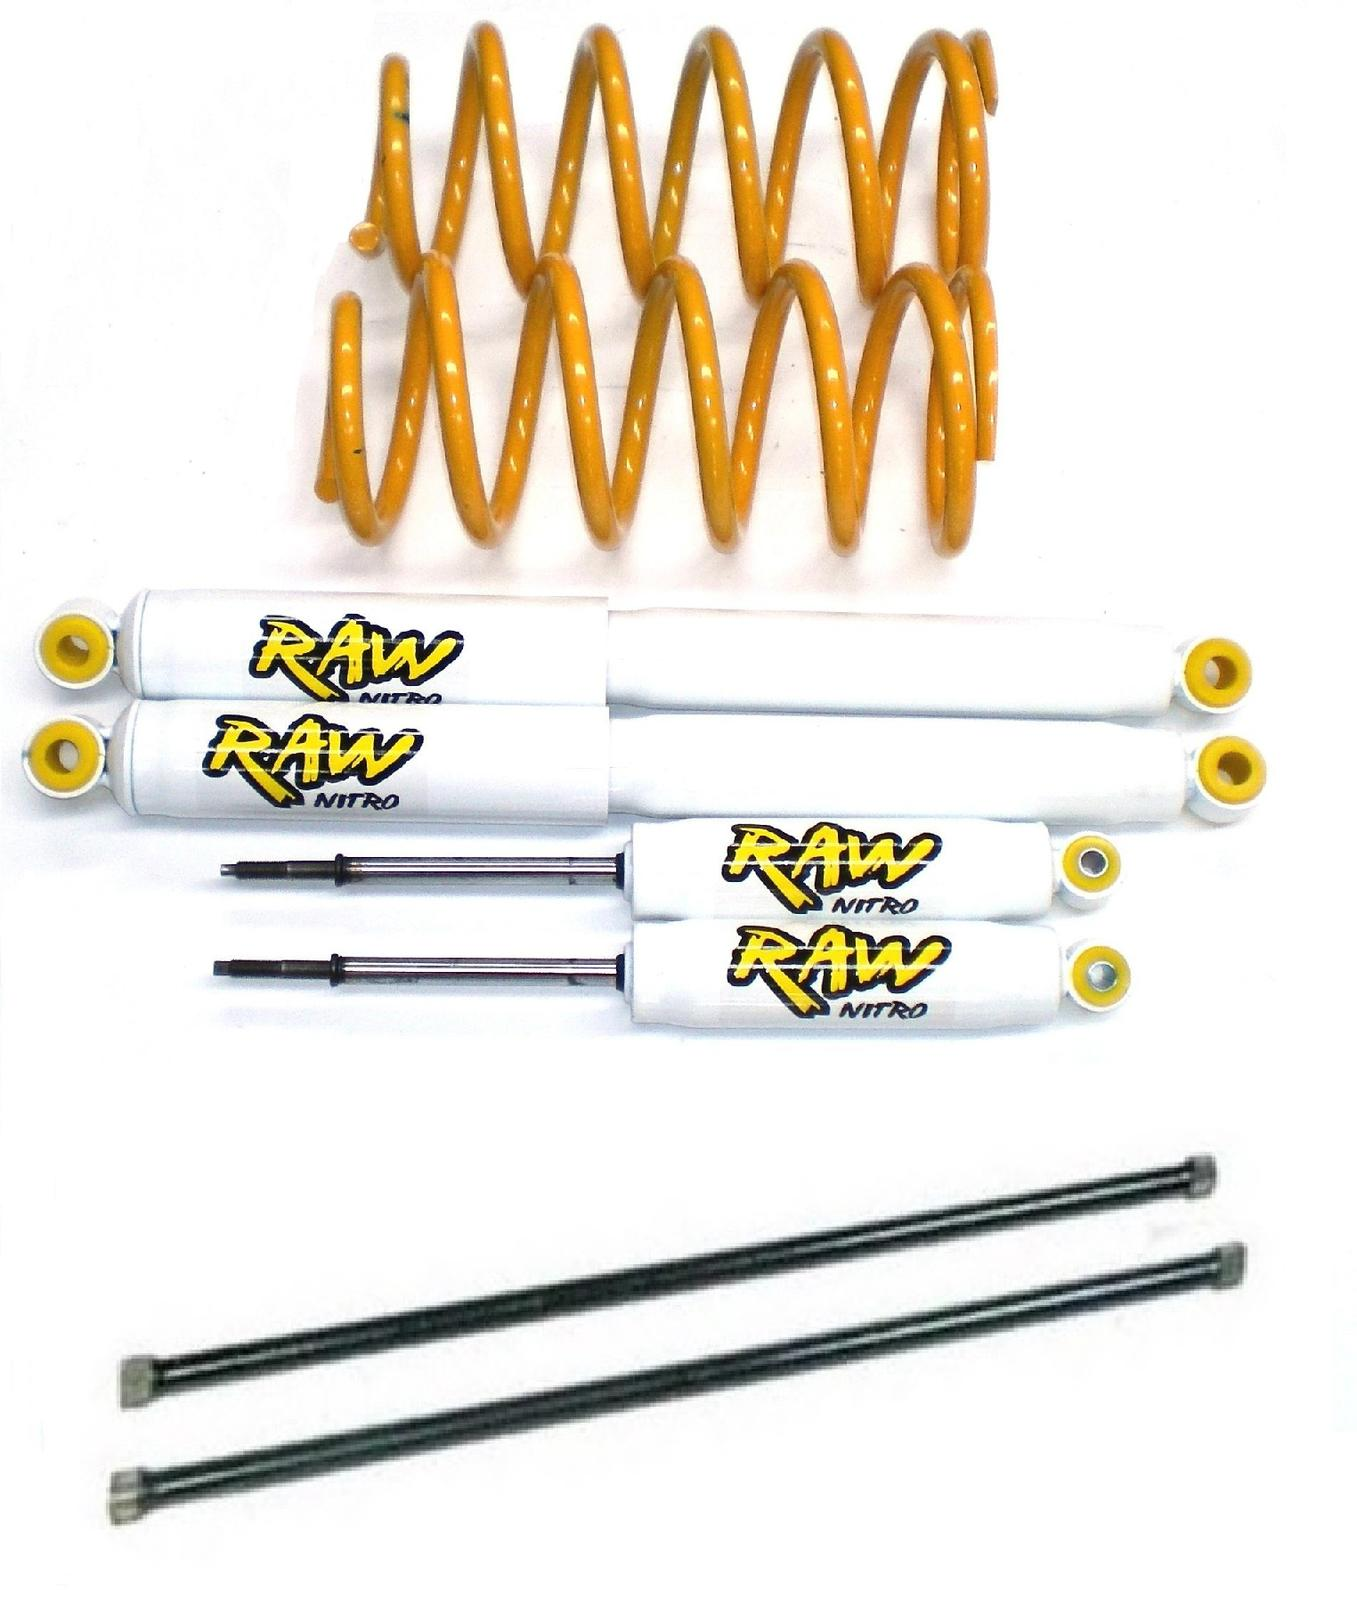 Great Wall X240 2007-2008 4x4 2 Inch 50mm RAW Lift Kit - 250kg